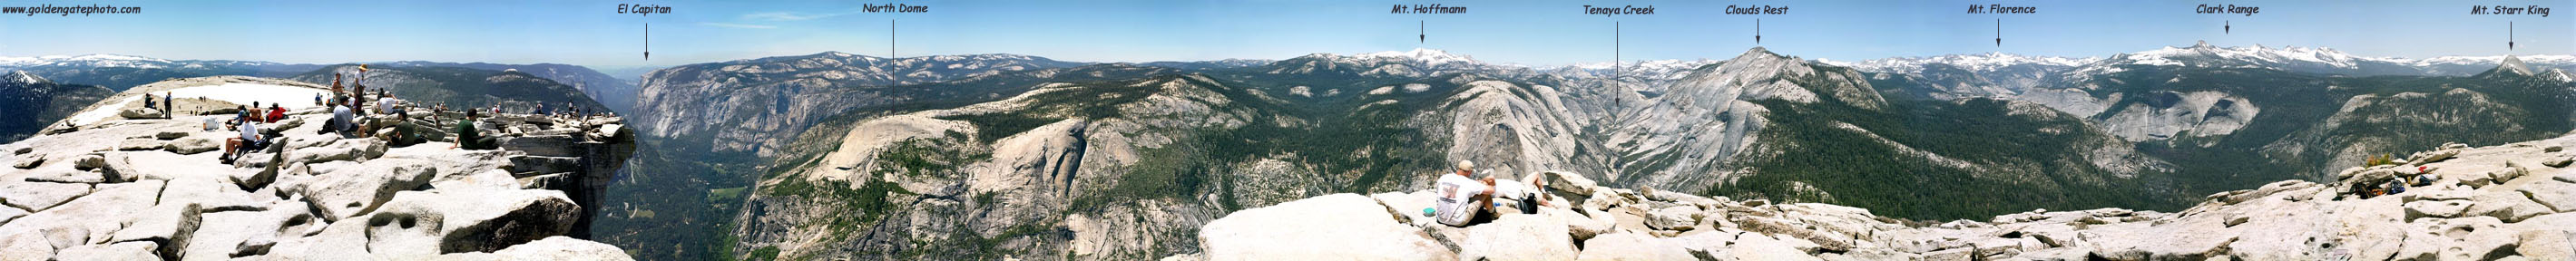 360 Degree view from the top of Half Dome